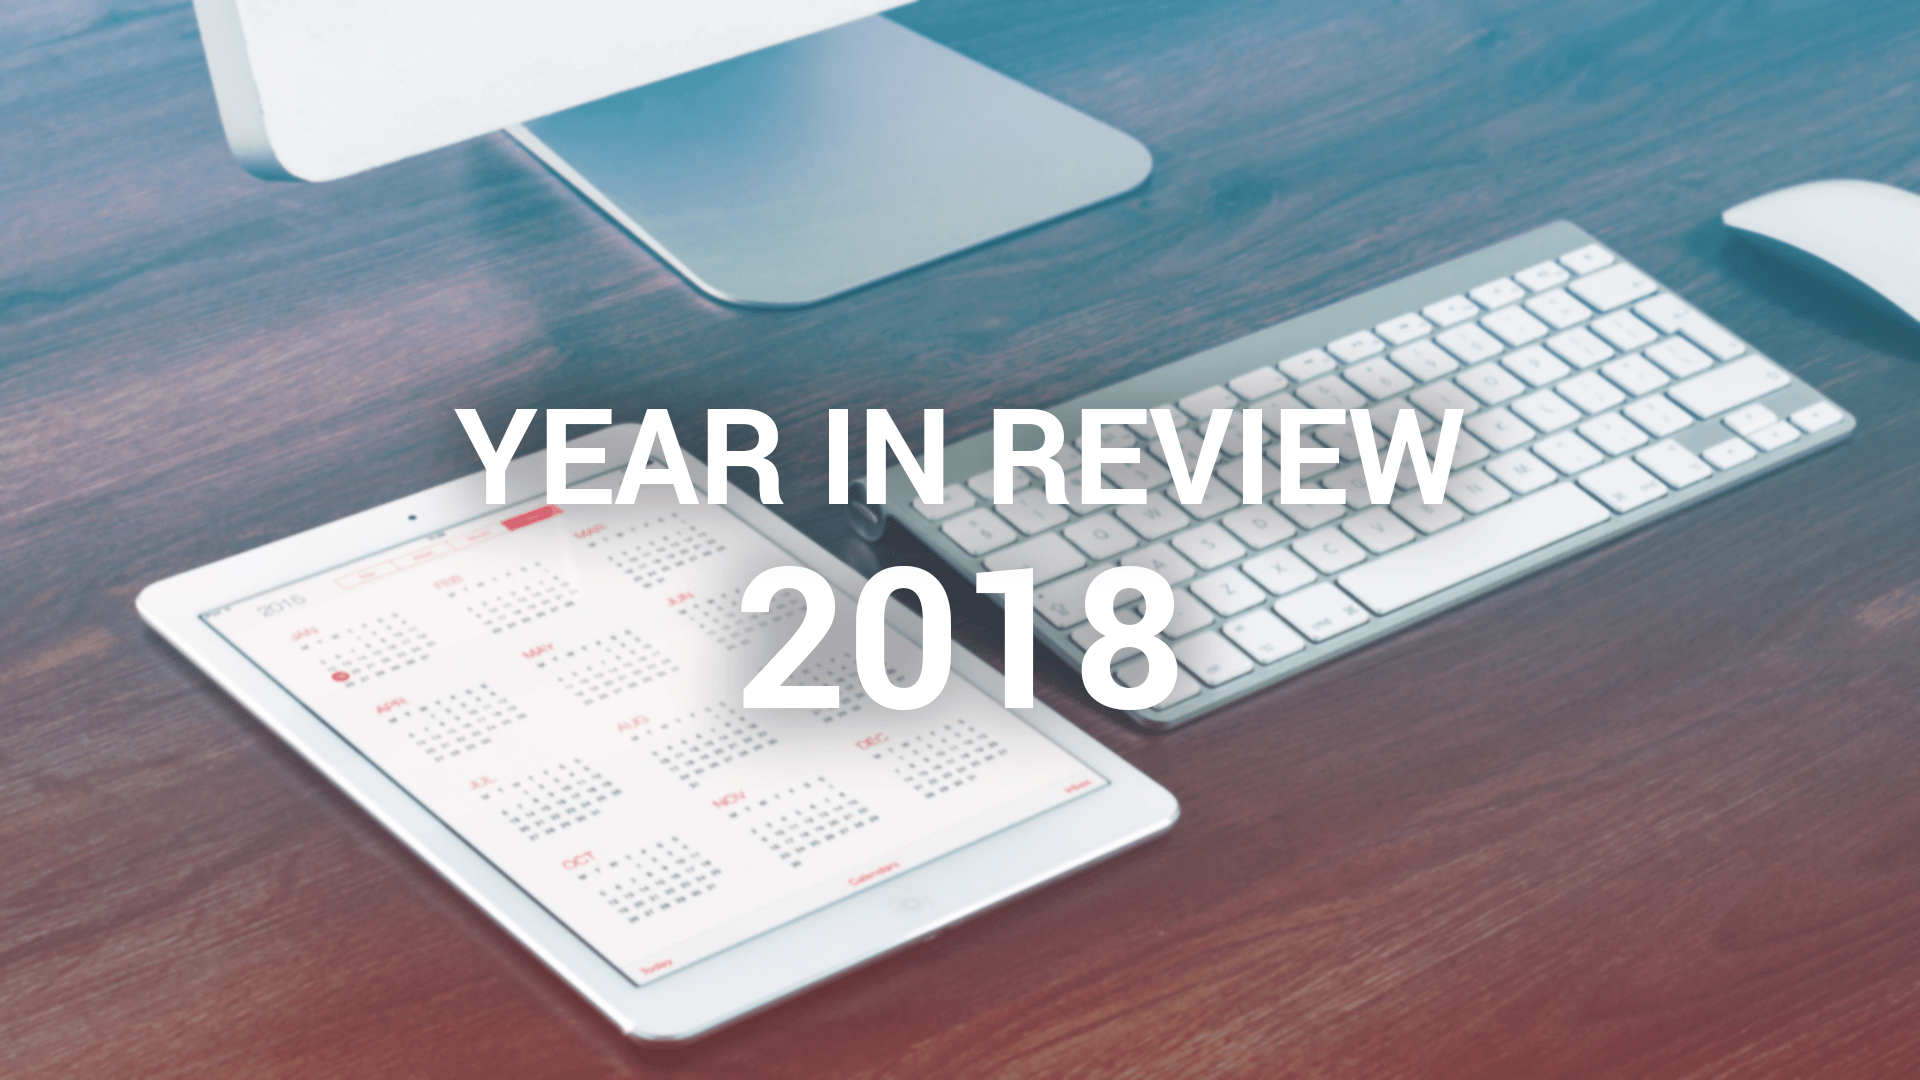 2018 Year in review: Statistics and Summary